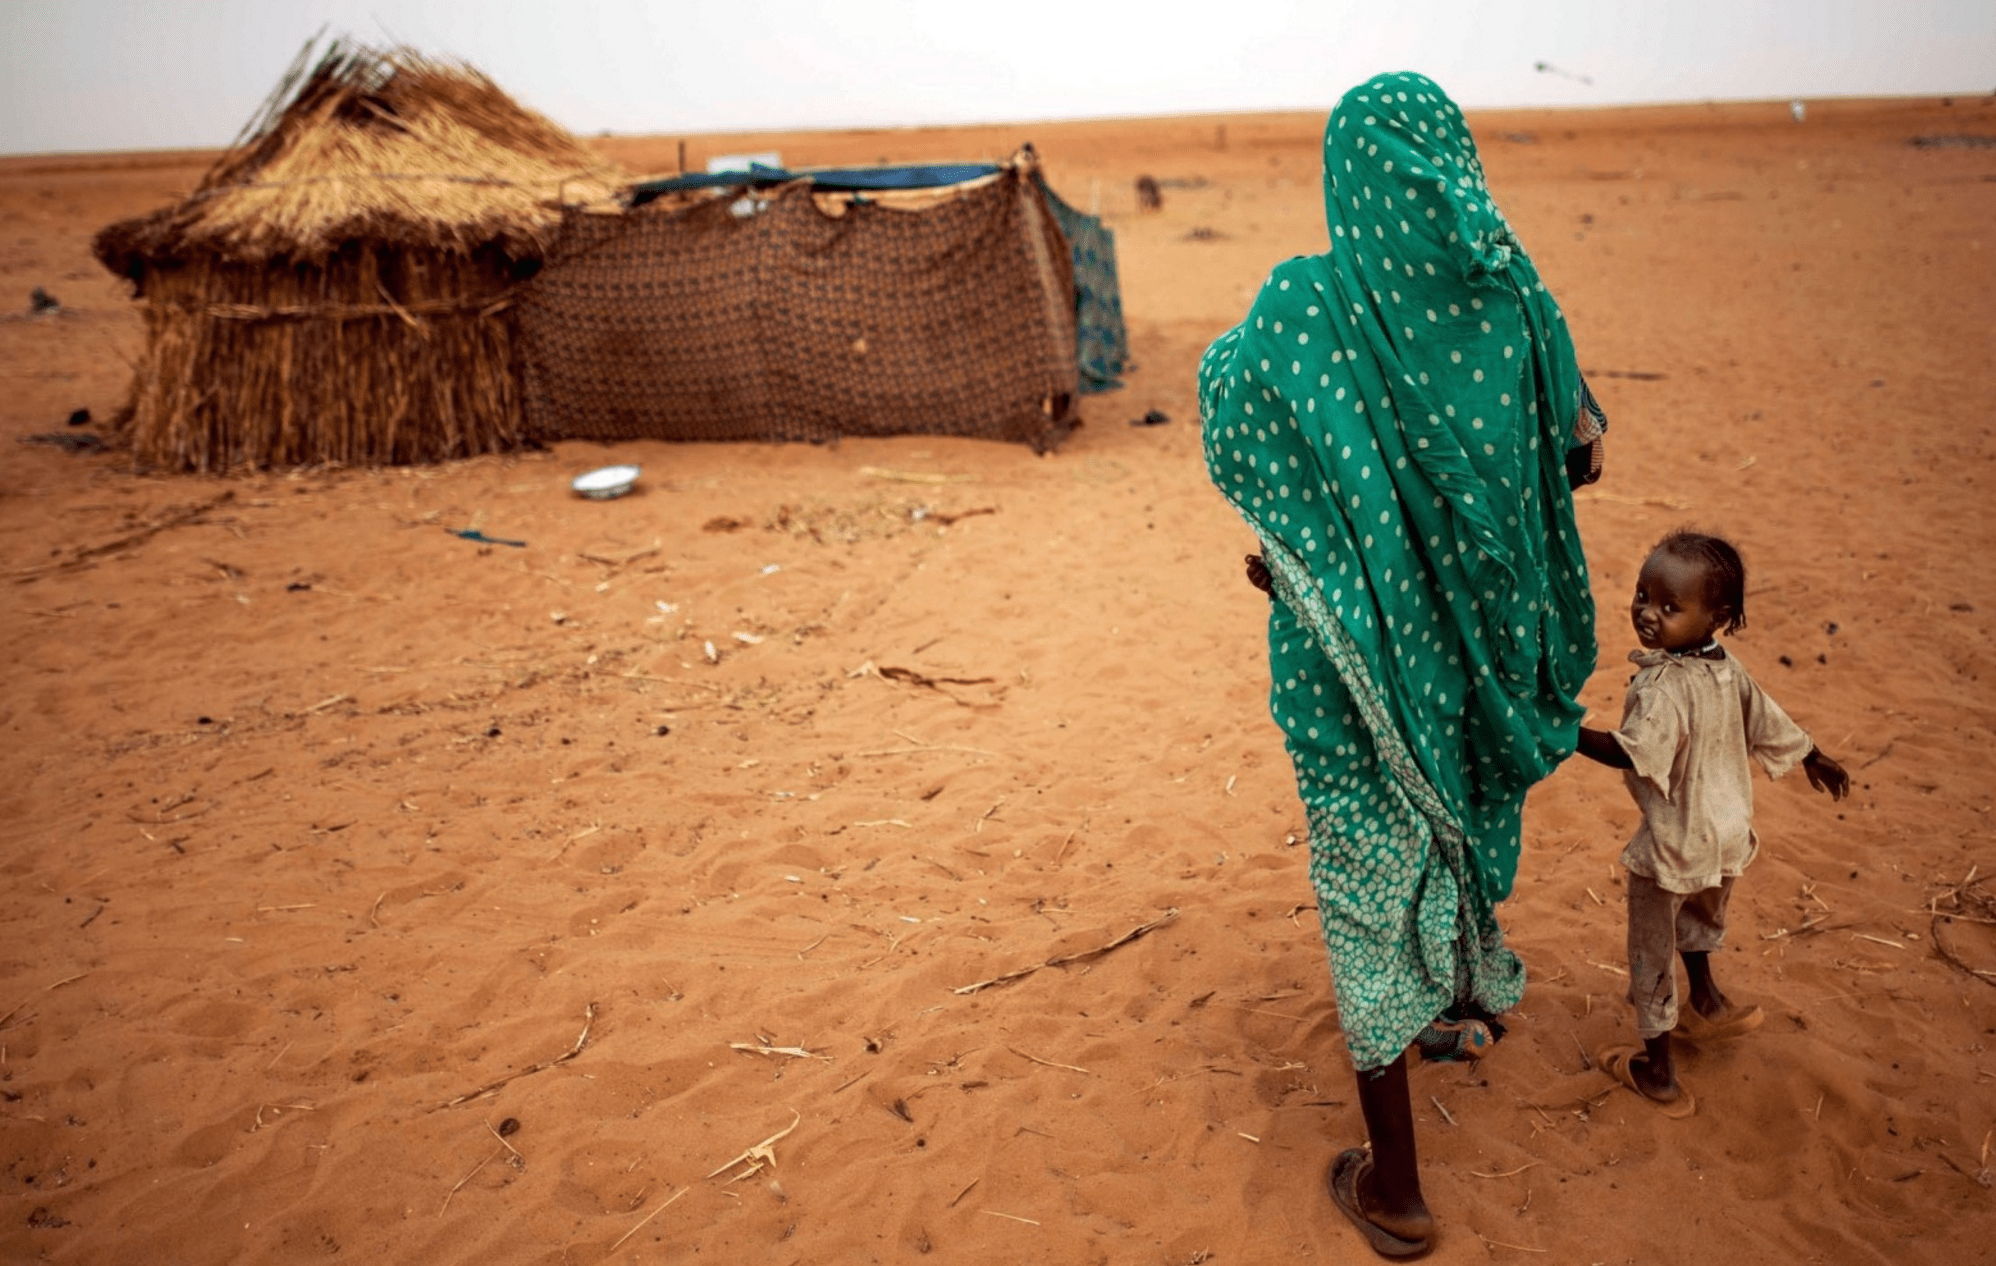 Darfur, Rape, and George Clooney